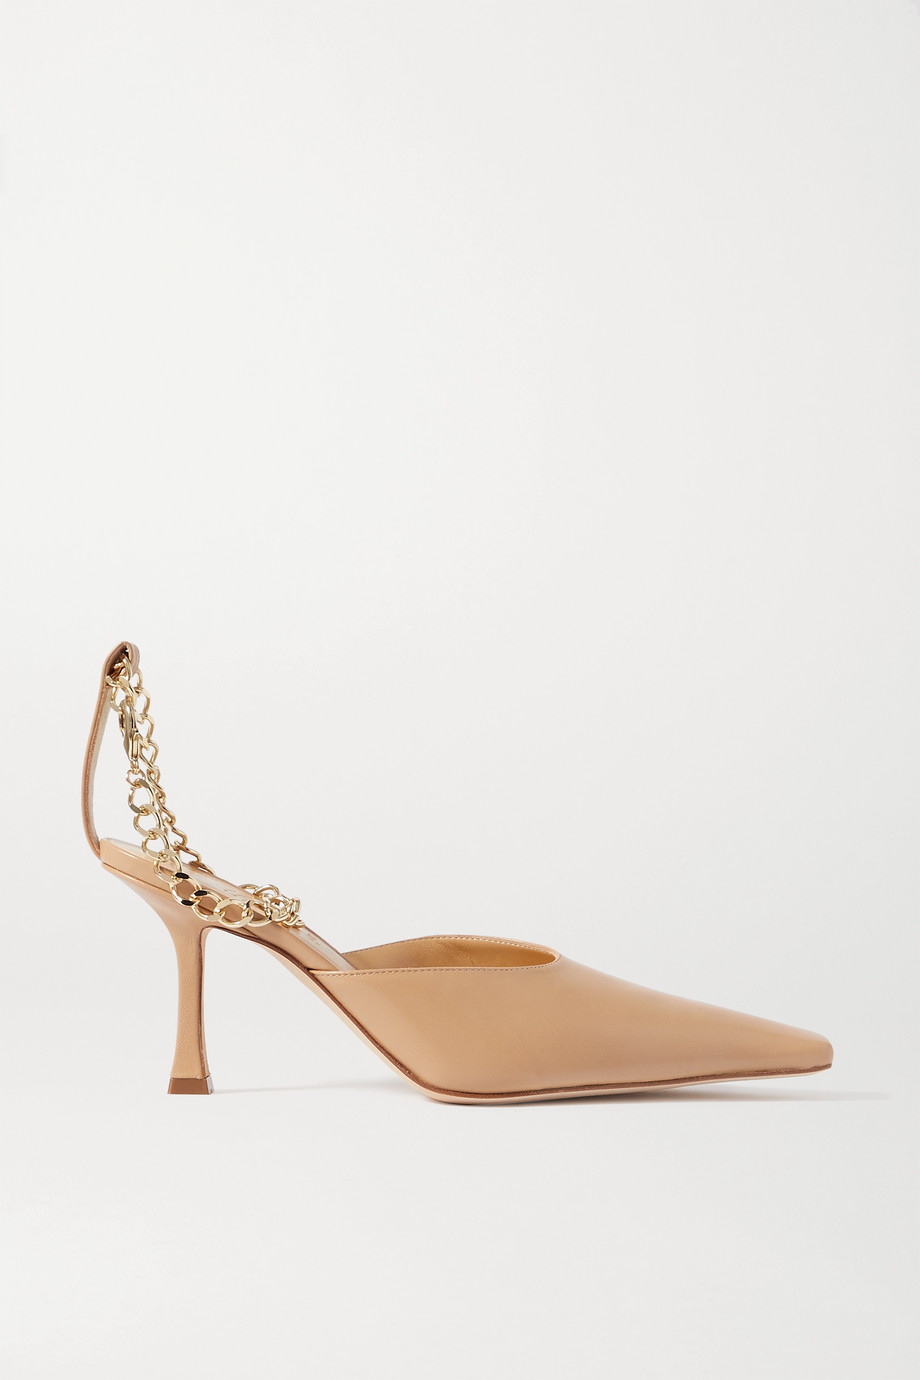 A.W.A.K.E. MODE Lucrezia chain-embellished leather pumps